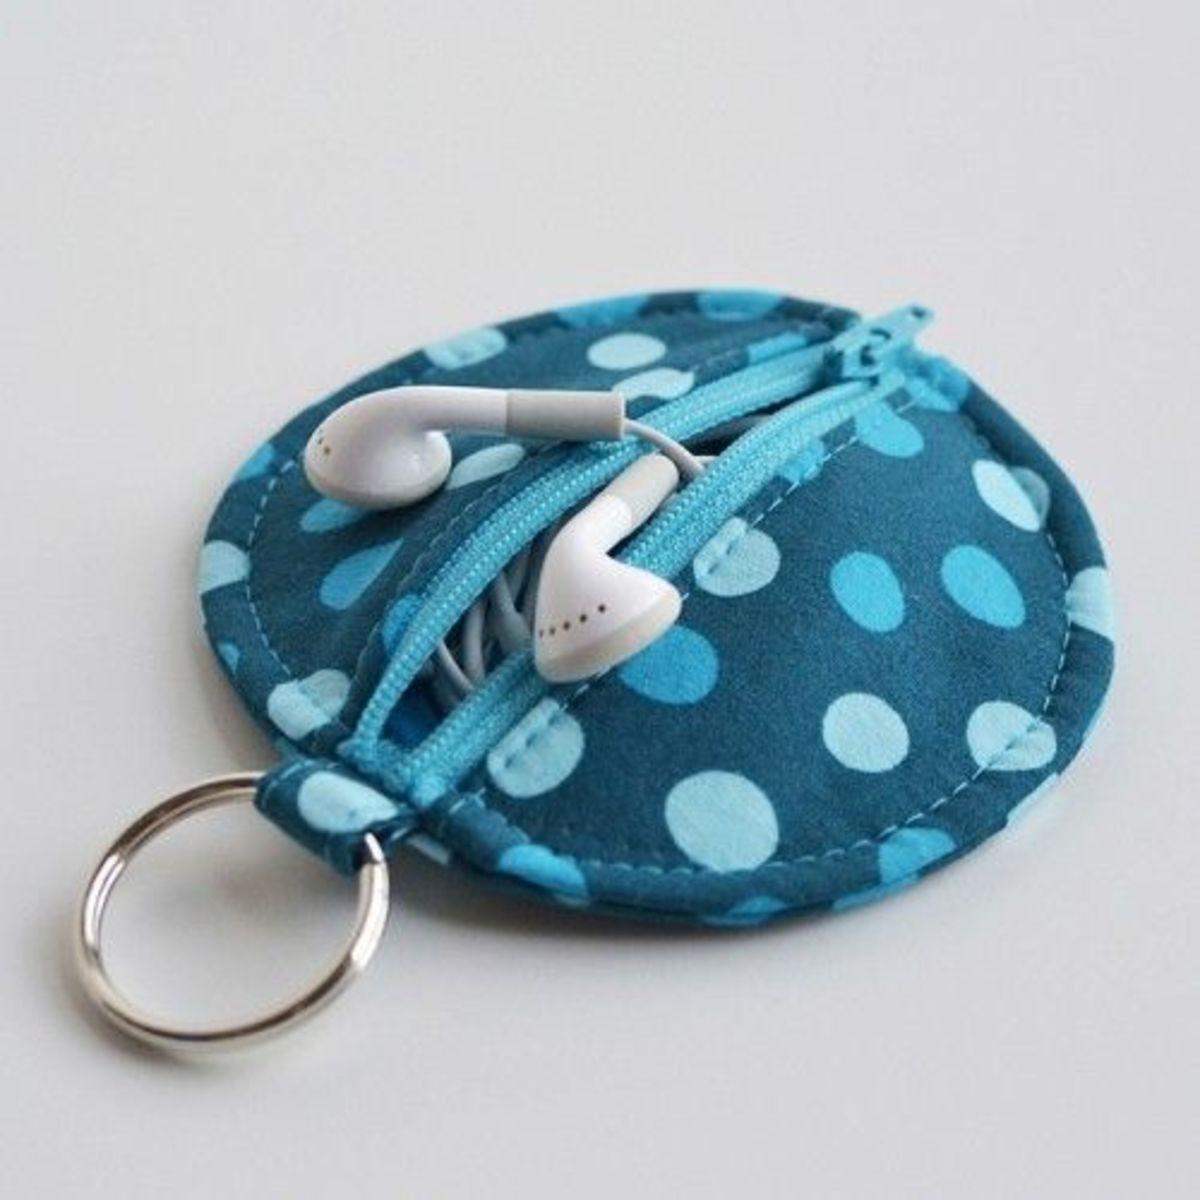 DIY Christmas Gift - Earbud Pouch